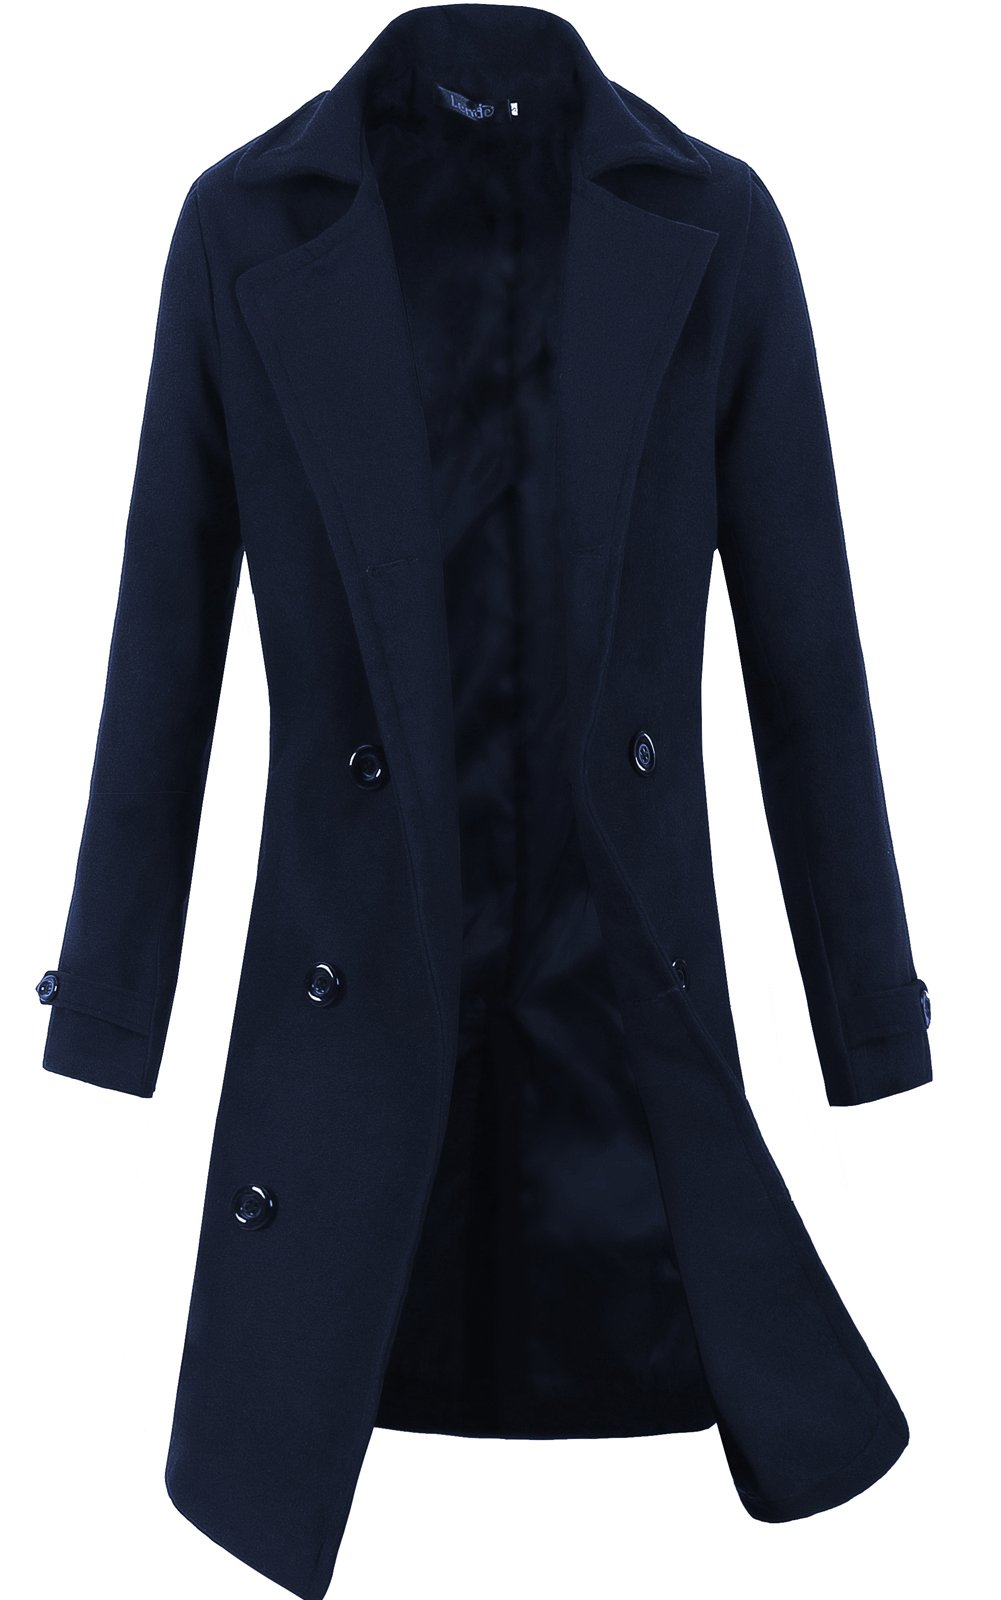 Lende Men's Trench Coat Winter Long Jacket Double Breasted Overcoat (S, Navy)